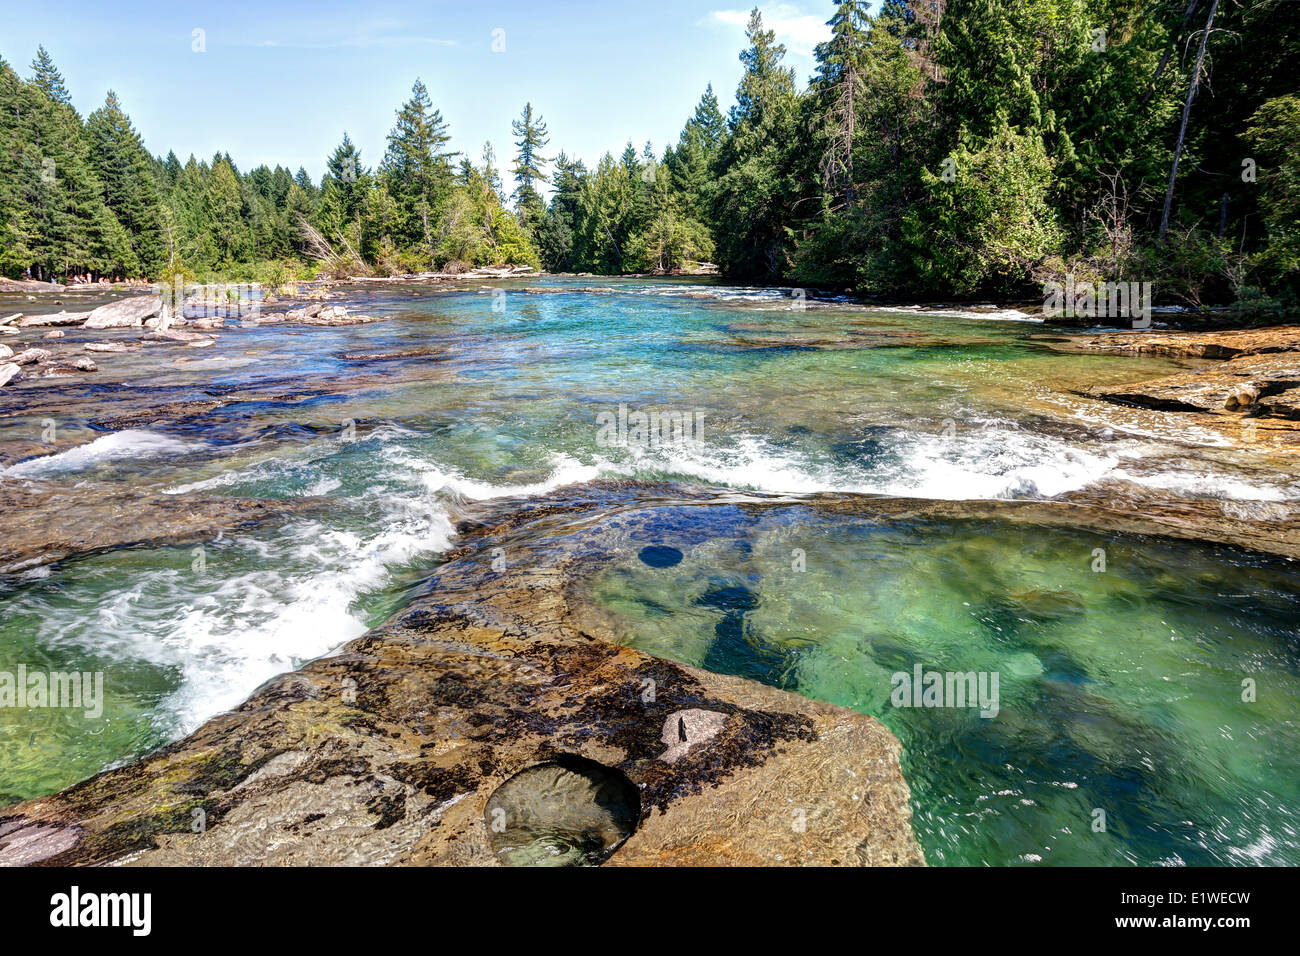 Sandstone potholes near Nymph Falls a popular swimming area on the Puntledge River.  Courtenay The Comox Valley - Stock Image